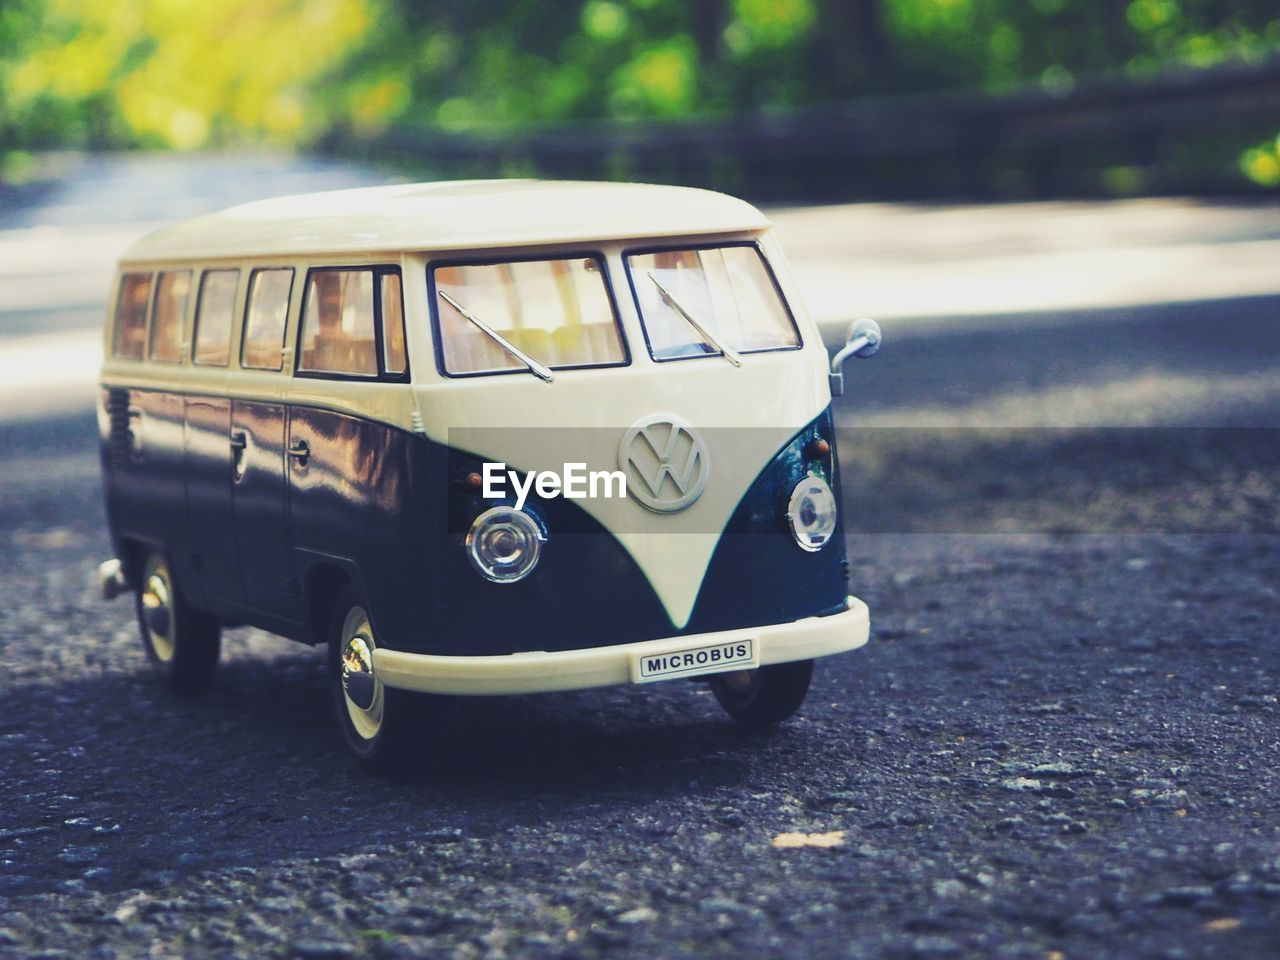 mode of transportation, transportation, land vehicle, car, motor vehicle, road, day, toy, no people, selective focus, street, toy car, city, retro styled, focus on foreground, stationary, outdoors, close-up, vintage car, small, luxury